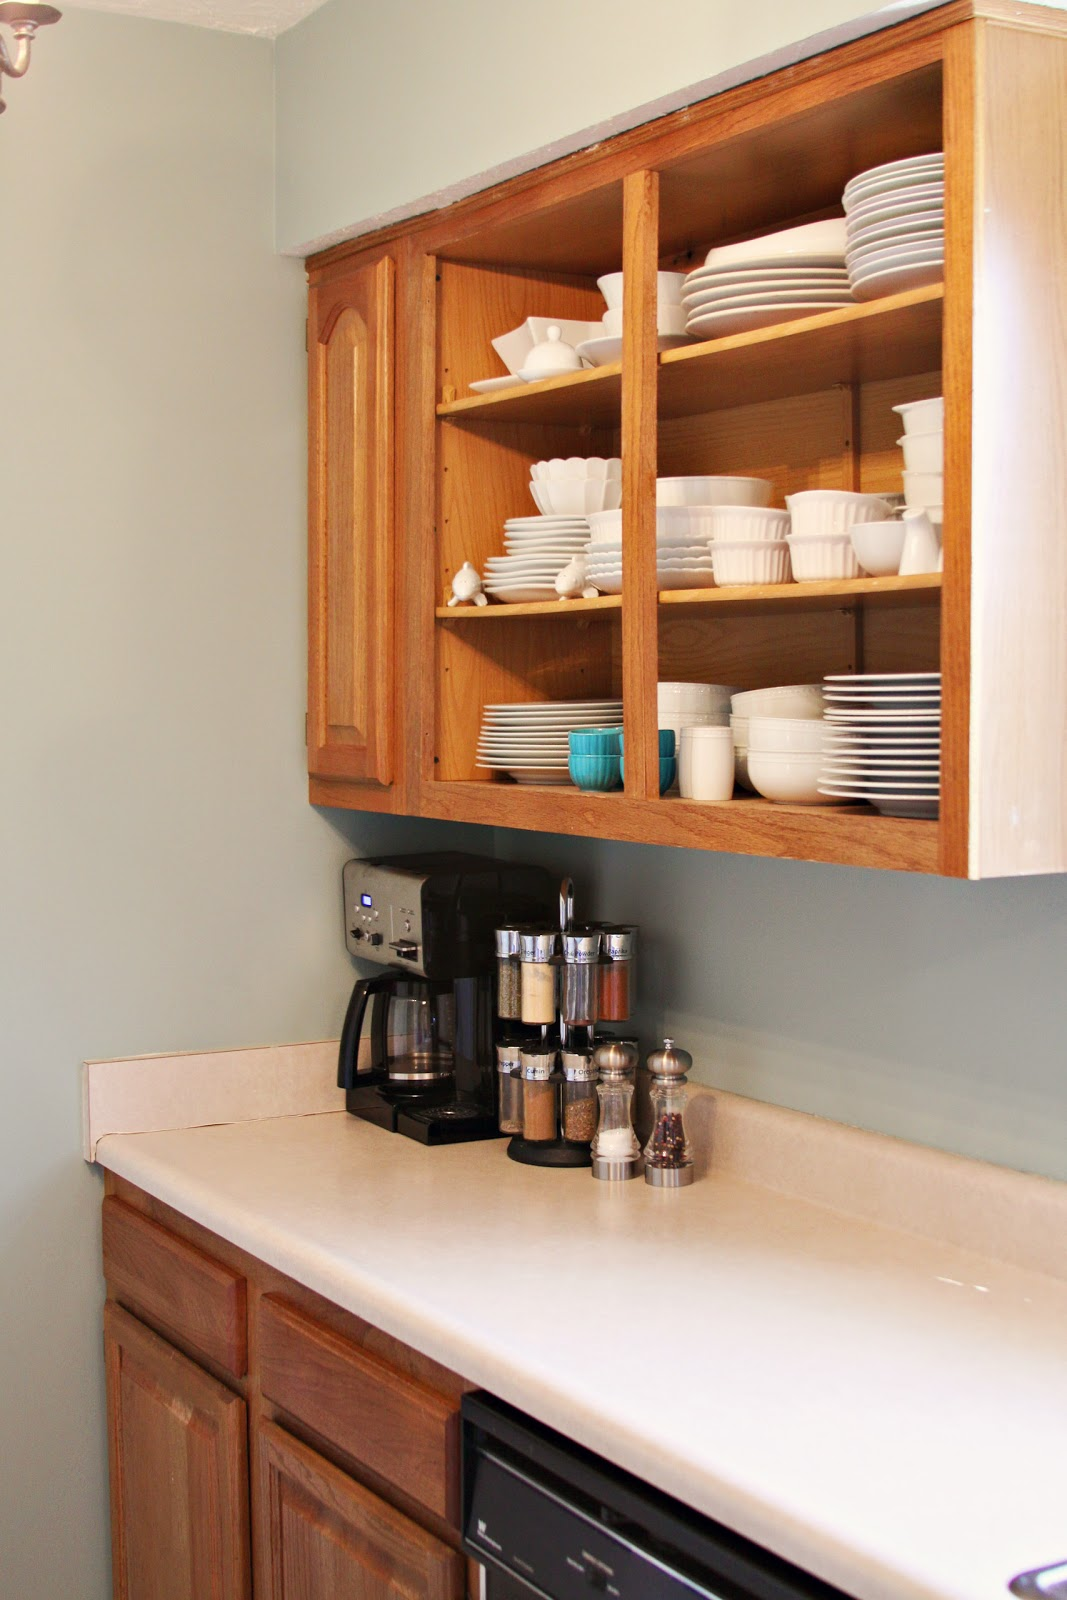 Open Shelving Kitchen Cabinets Welcome New Post Has Been Published On Kalkunta